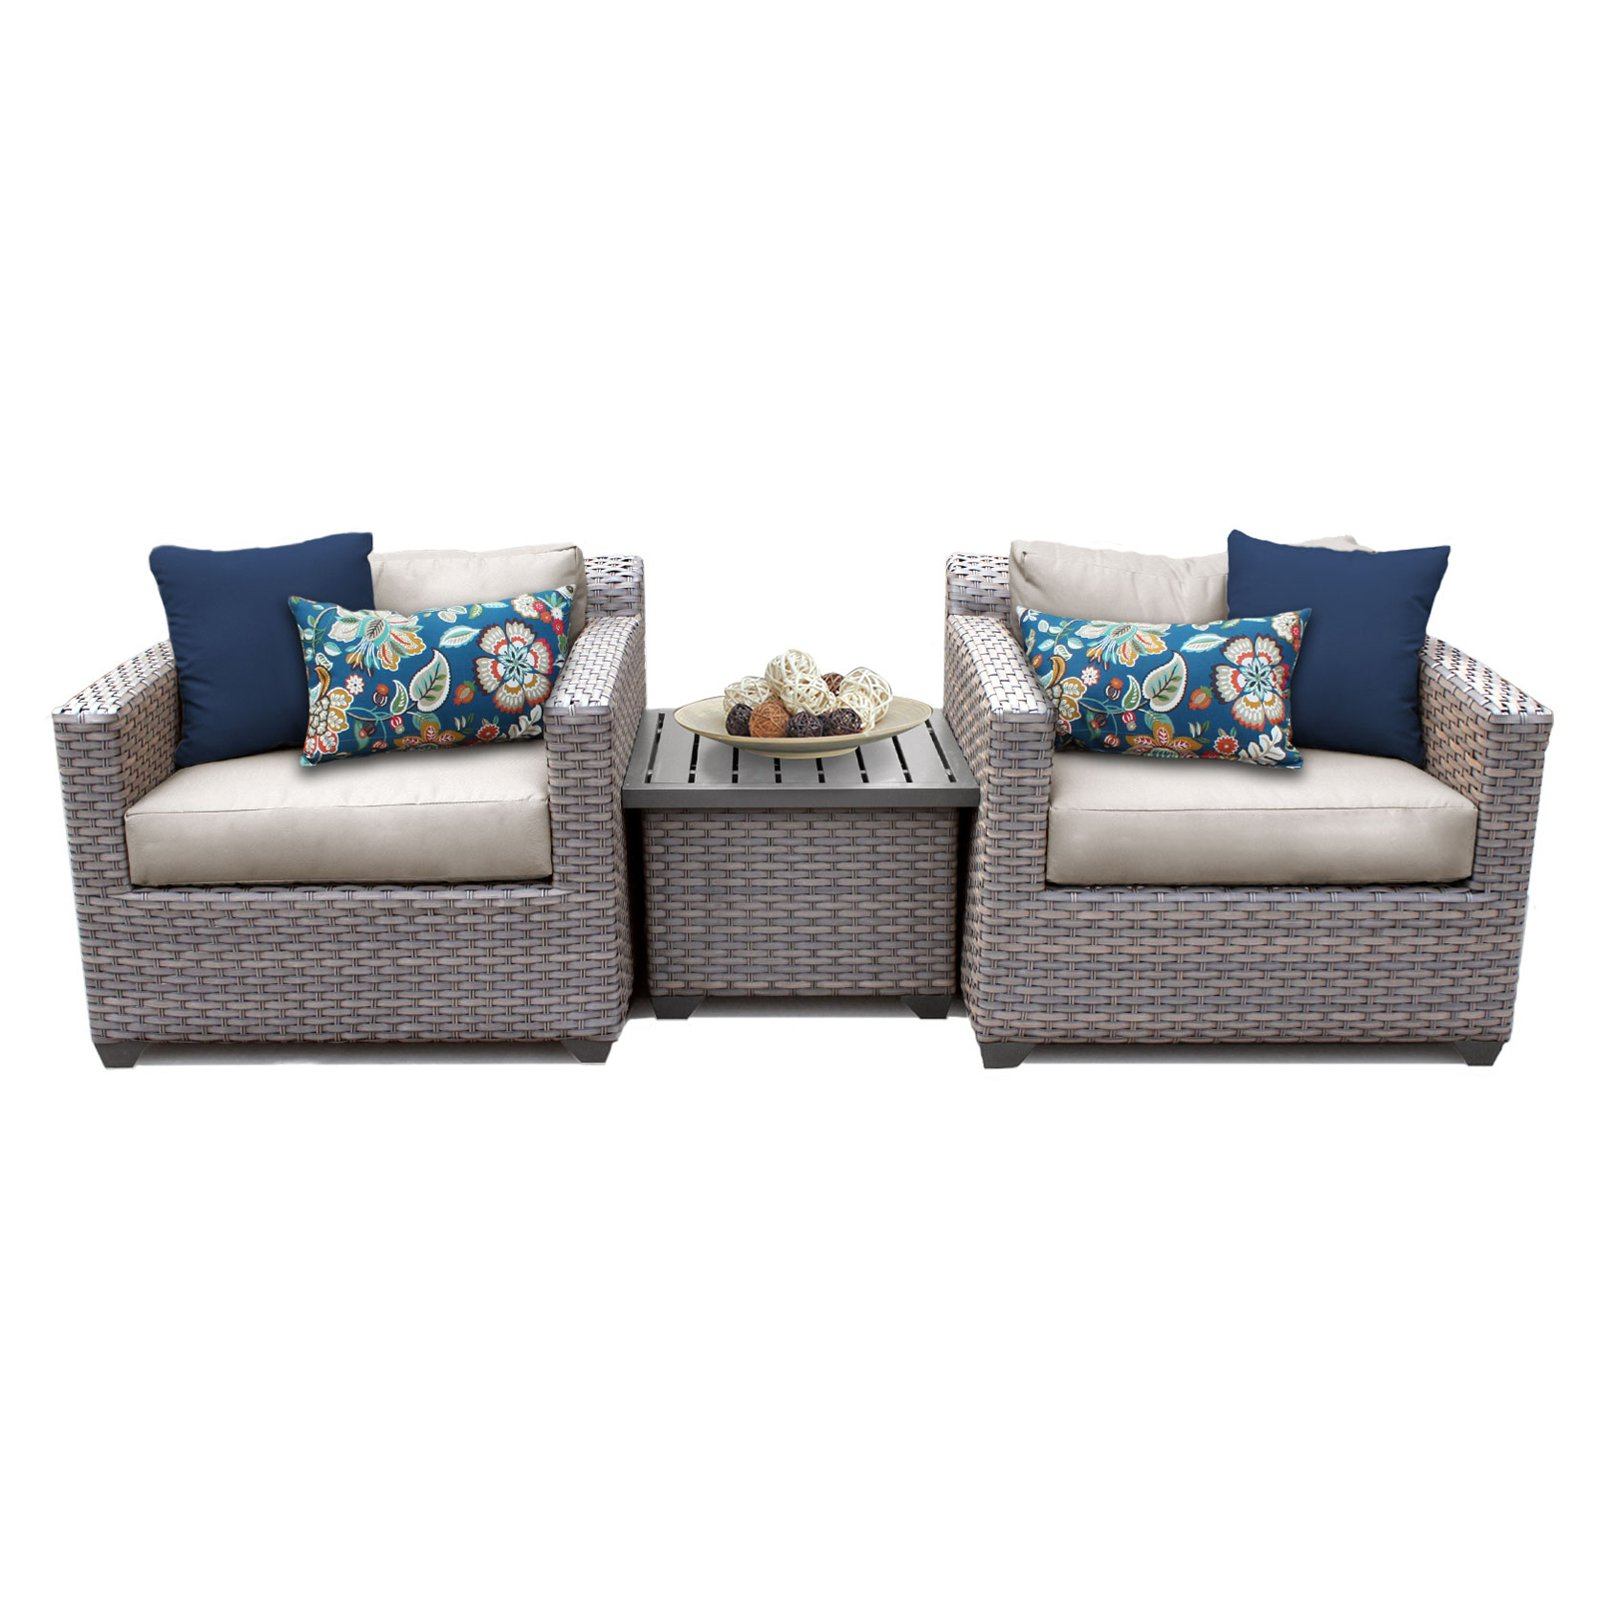 TK Classics Florence Wicker 3 Piece Patio Conversation Set with End Table and 2 Sets of Cushion Covers